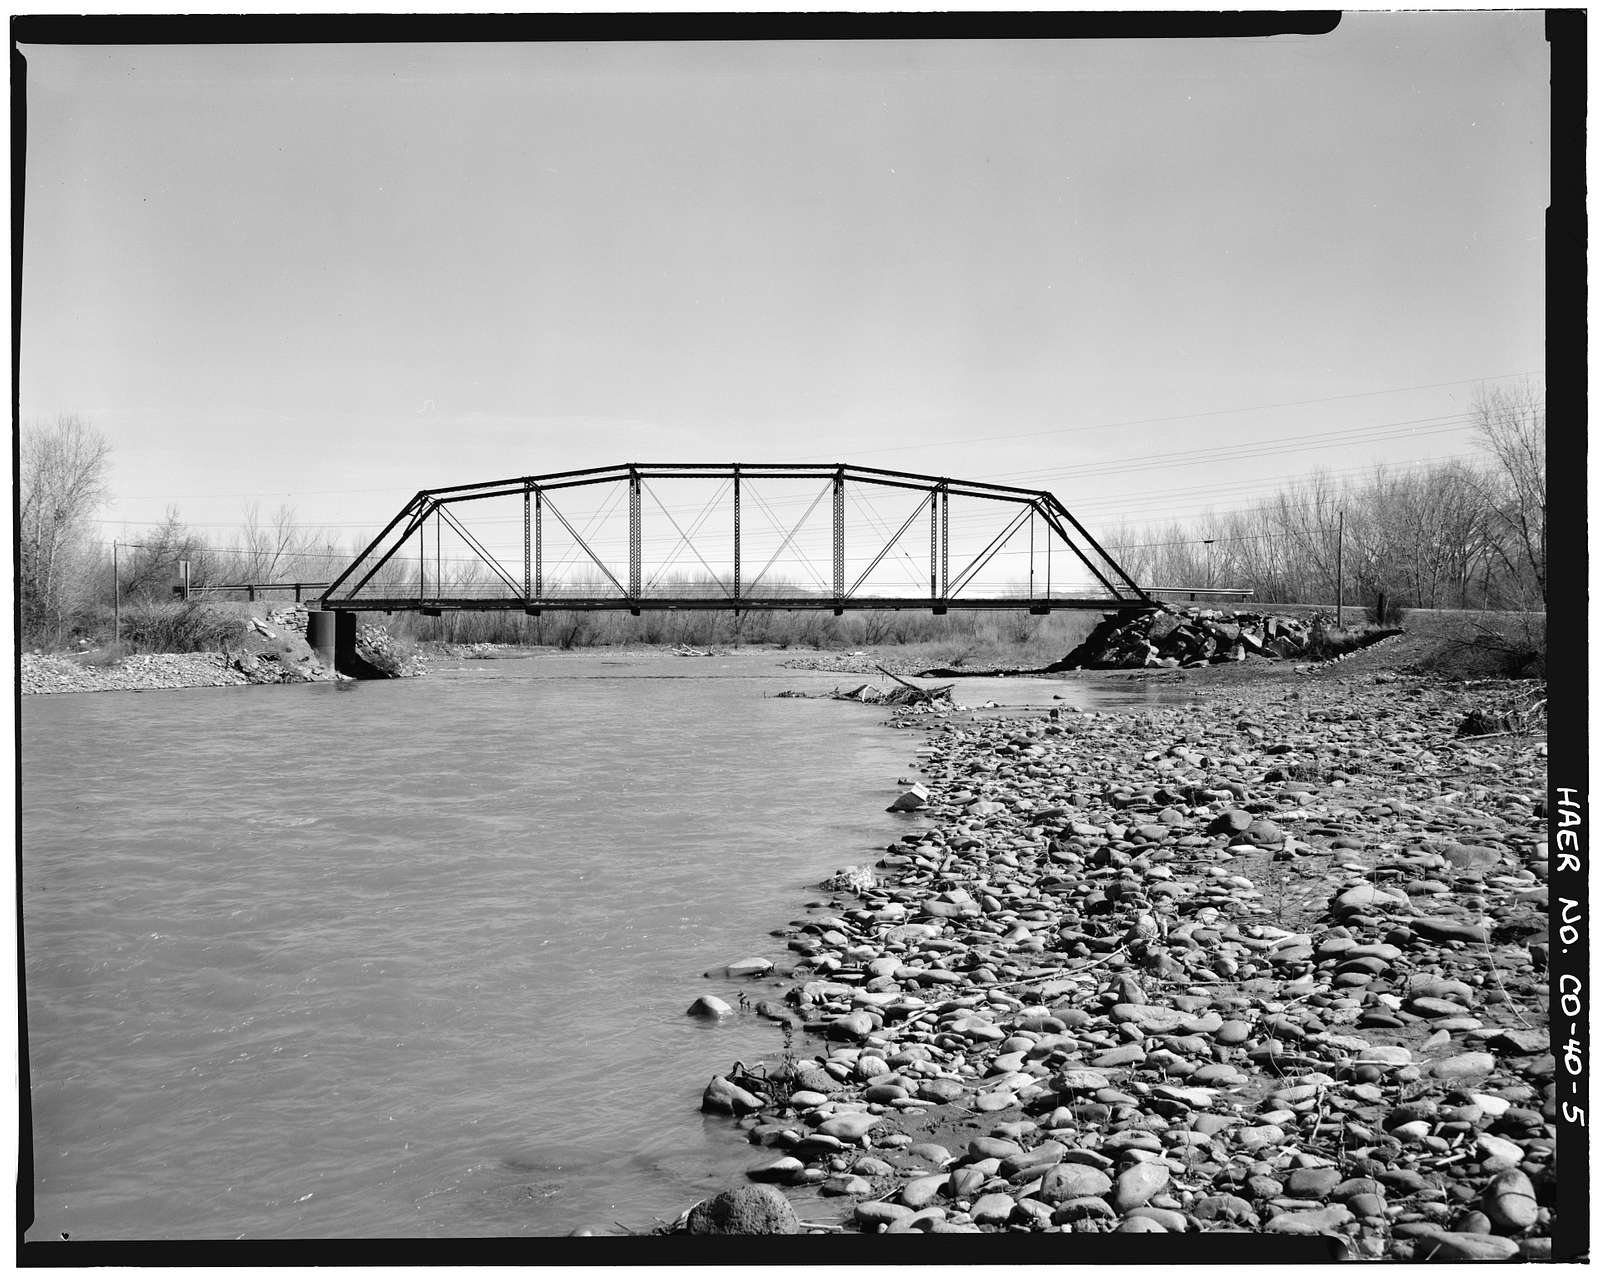 Hotchkiss Bridge, Spanning North Fork River on County Road 3400, Hotchkiss, Delta County, CO